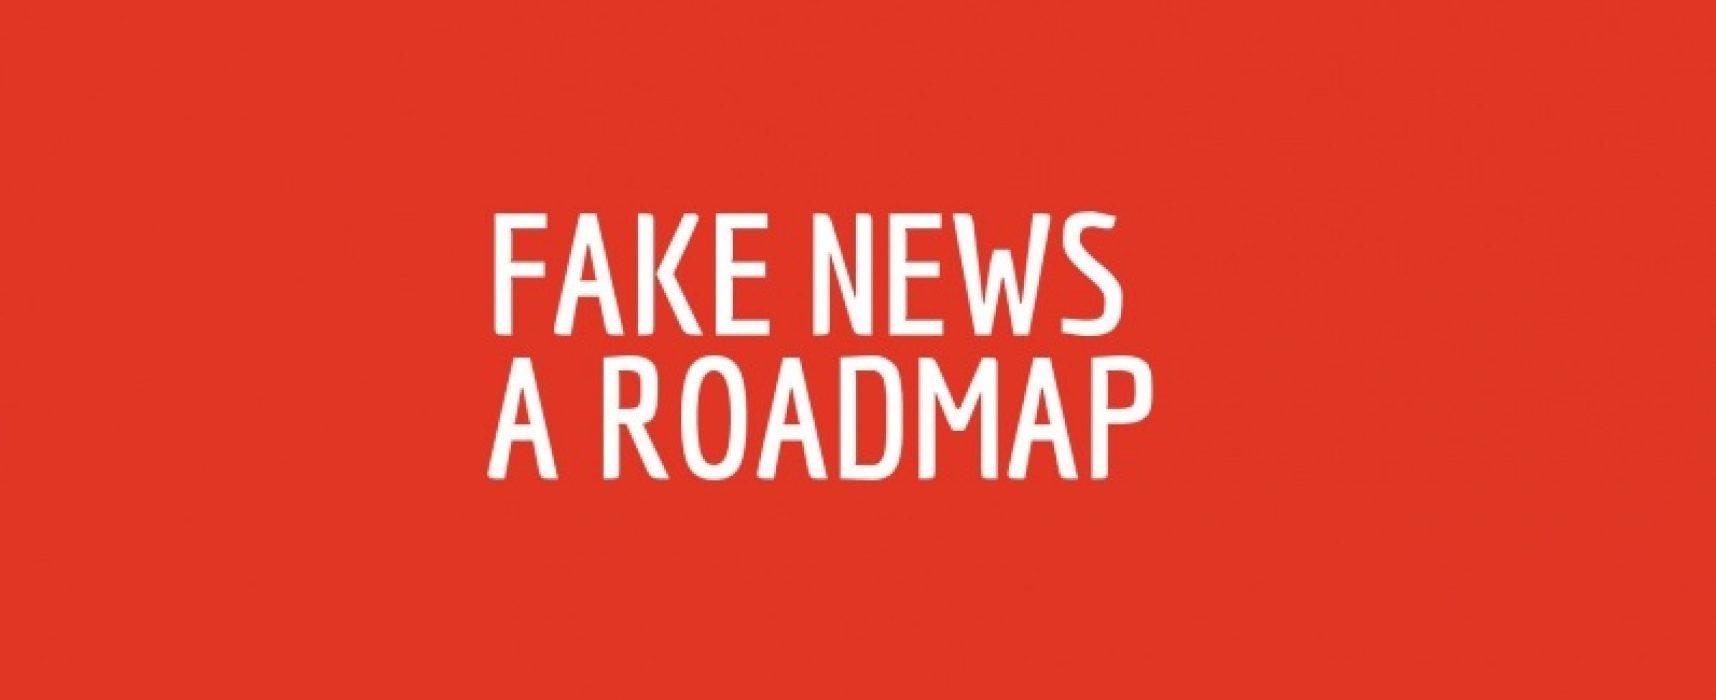 Fake News: A Roadmap'